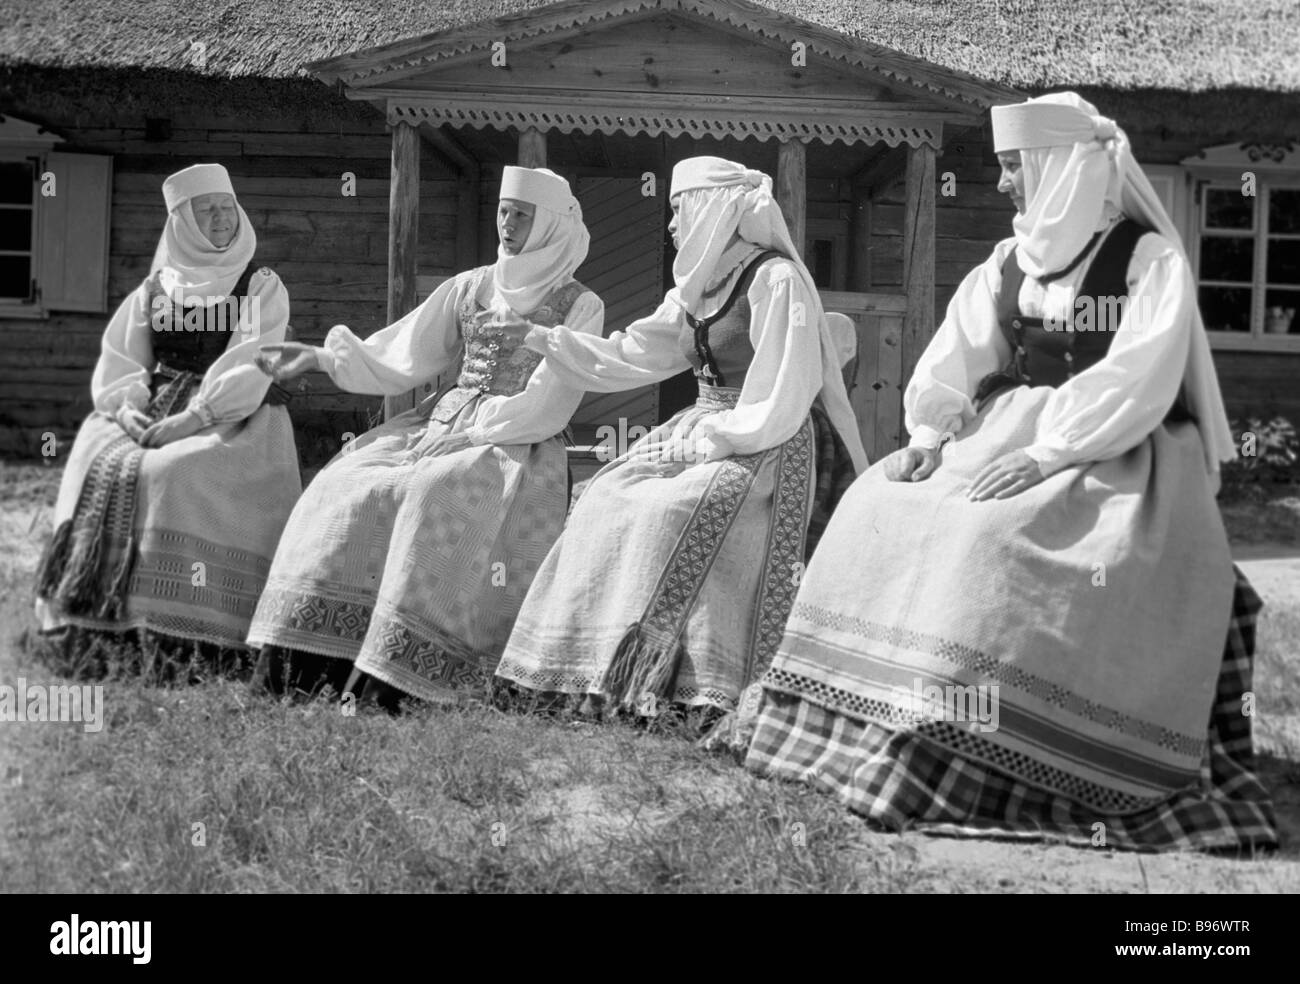 Folk song concert at the Lithuanian open air ethnography museum - Stock Image